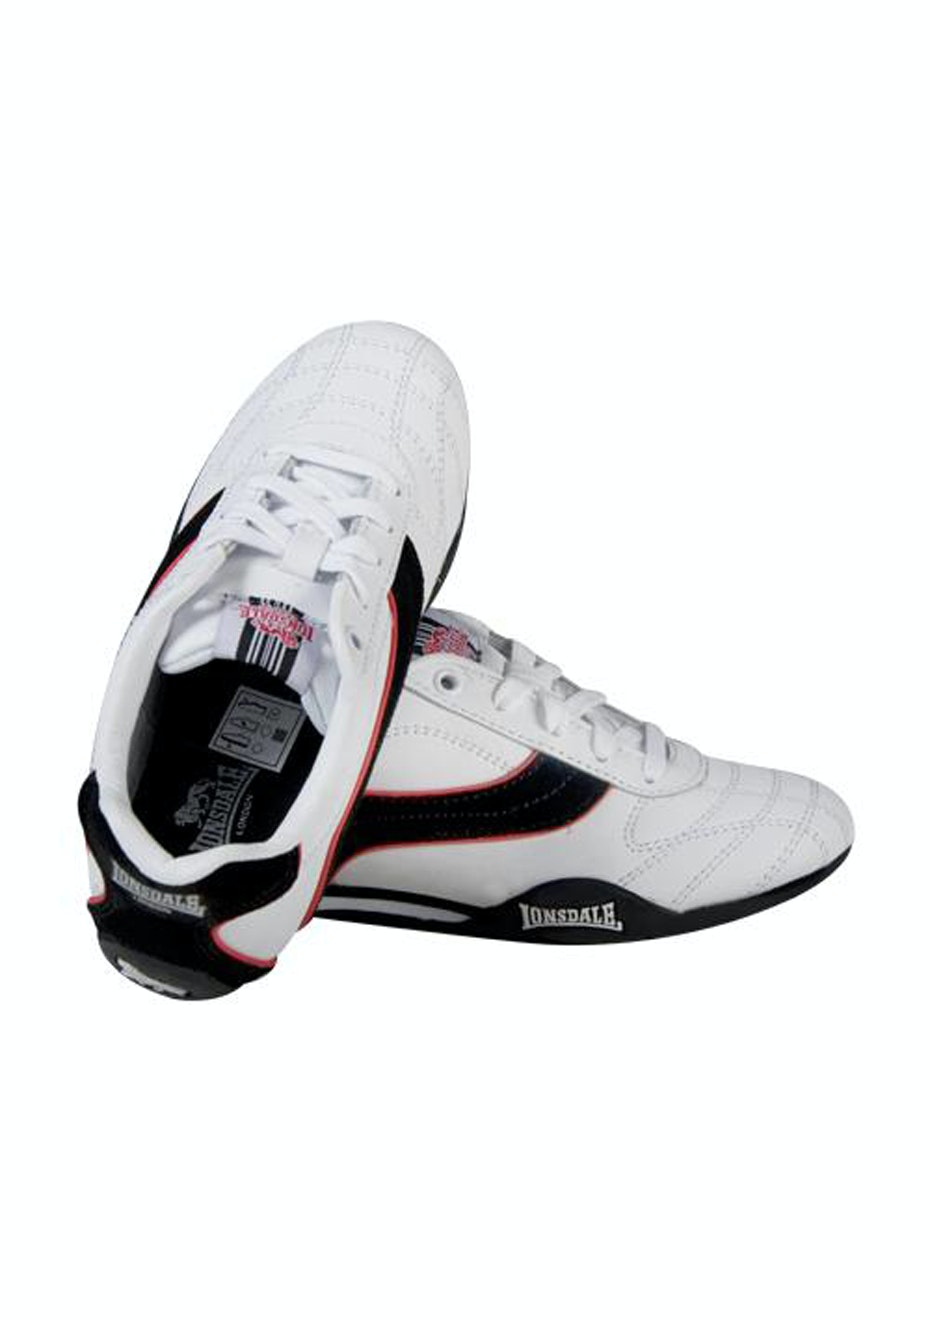 Lonsdale Kids - Charlton - White/Black